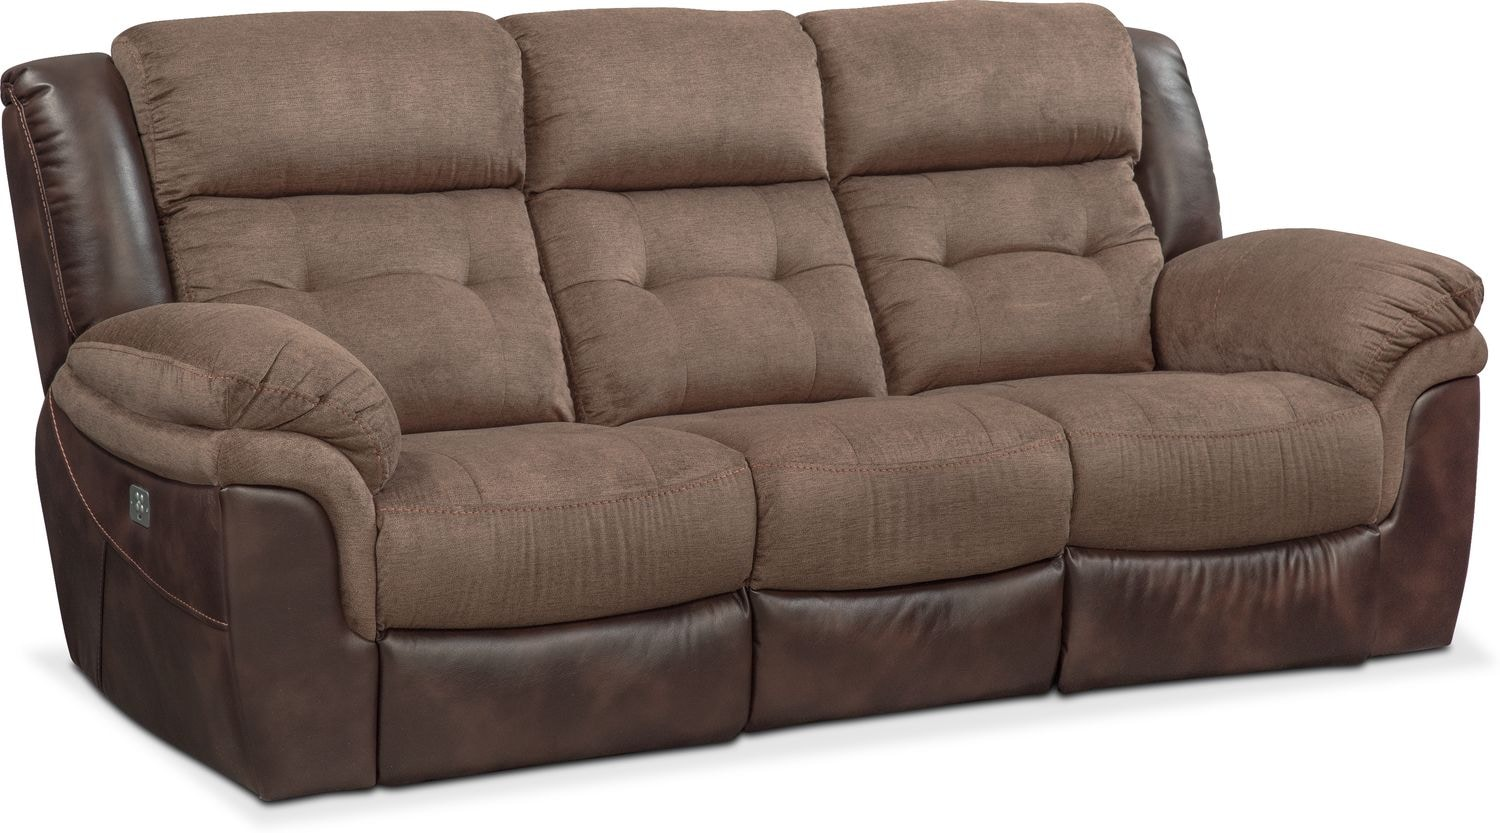 Tacoma Dual Power Reclining Sofa Brown Value City